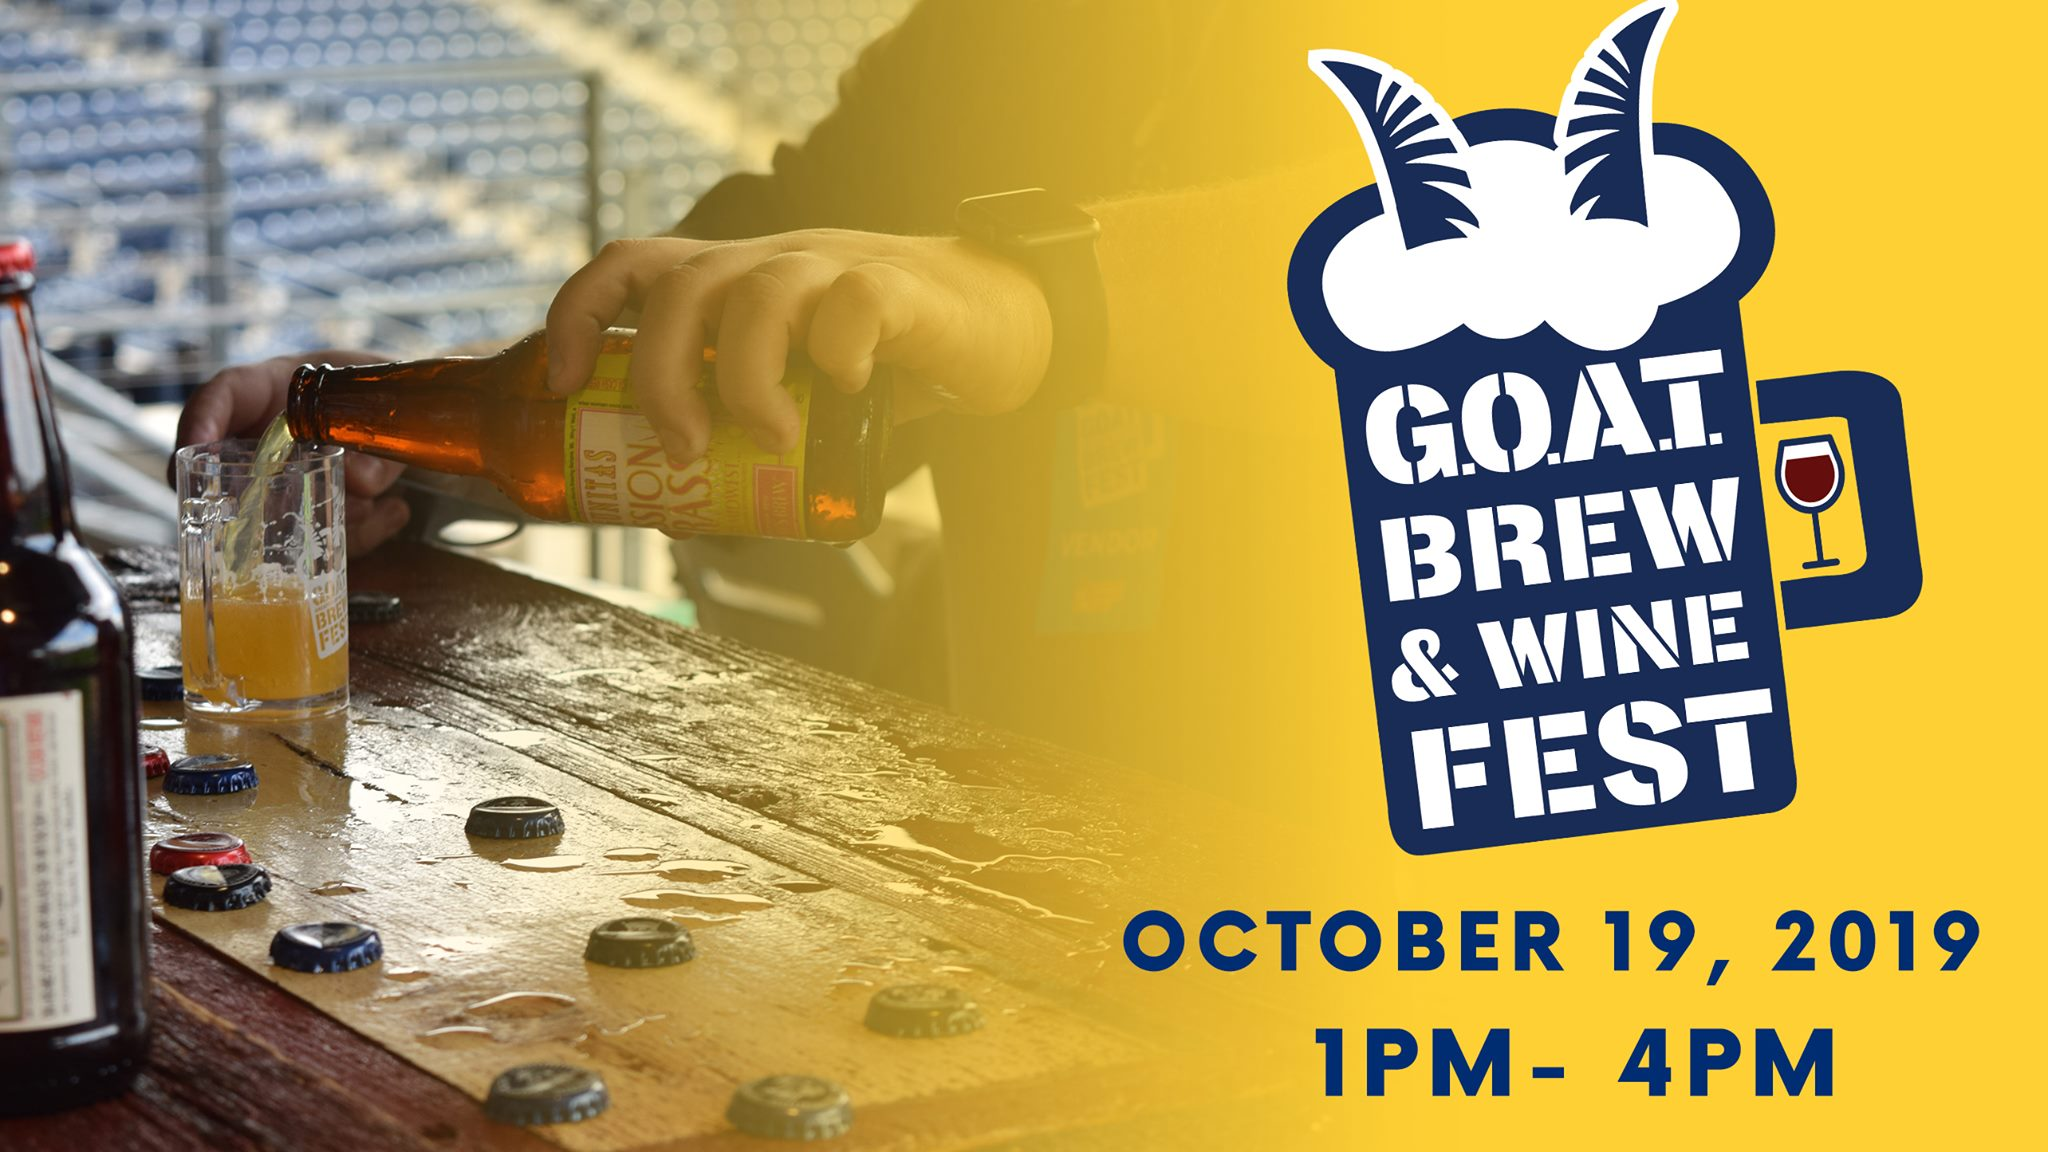 October 19, 2019: G.O.A.T. Brew & Wine Fest